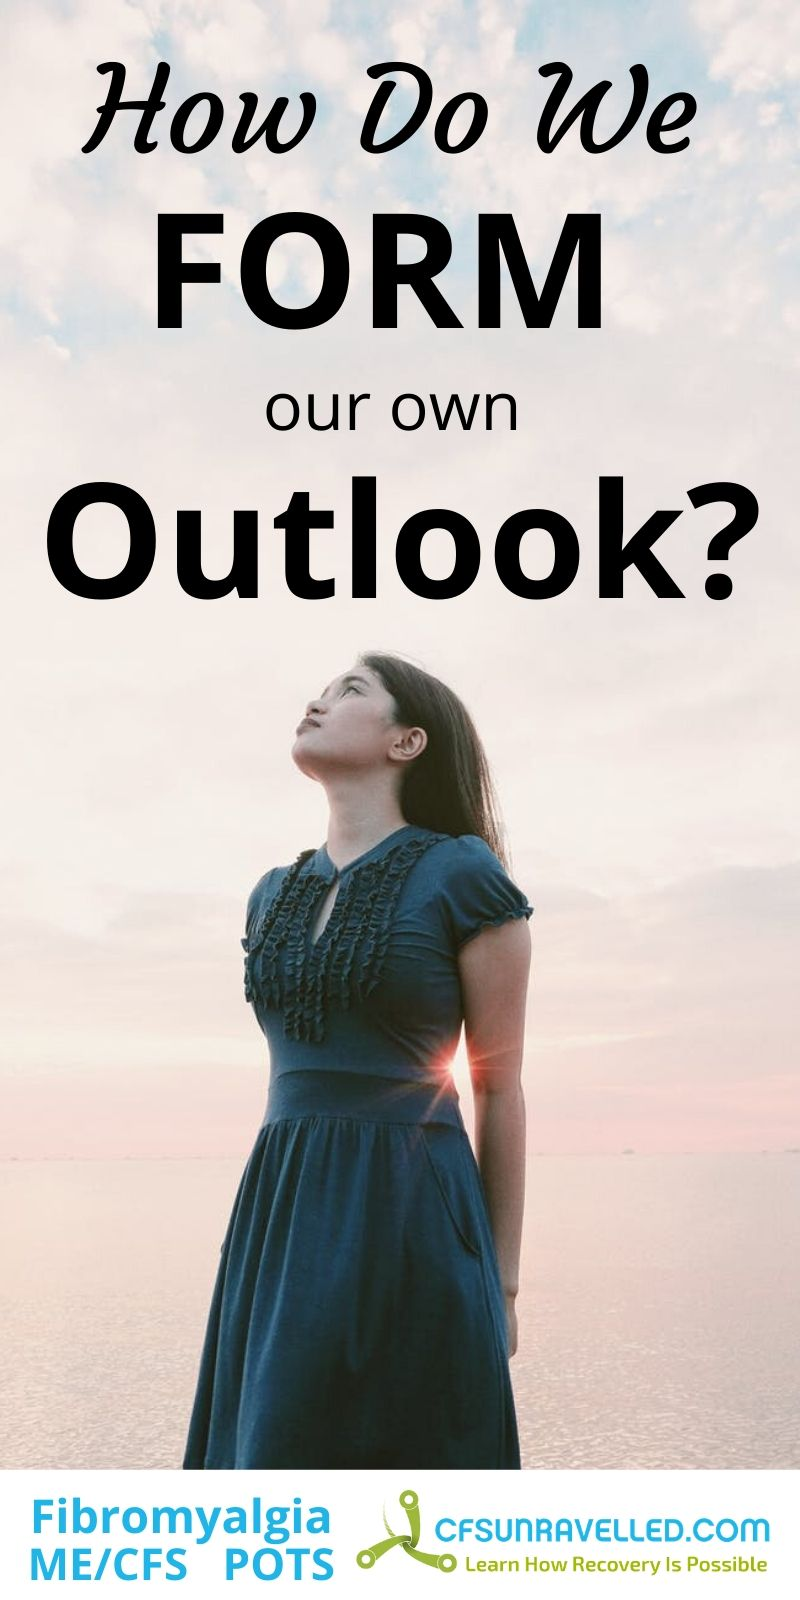 Woman in formal dress looking up with how do we form our own outlook text